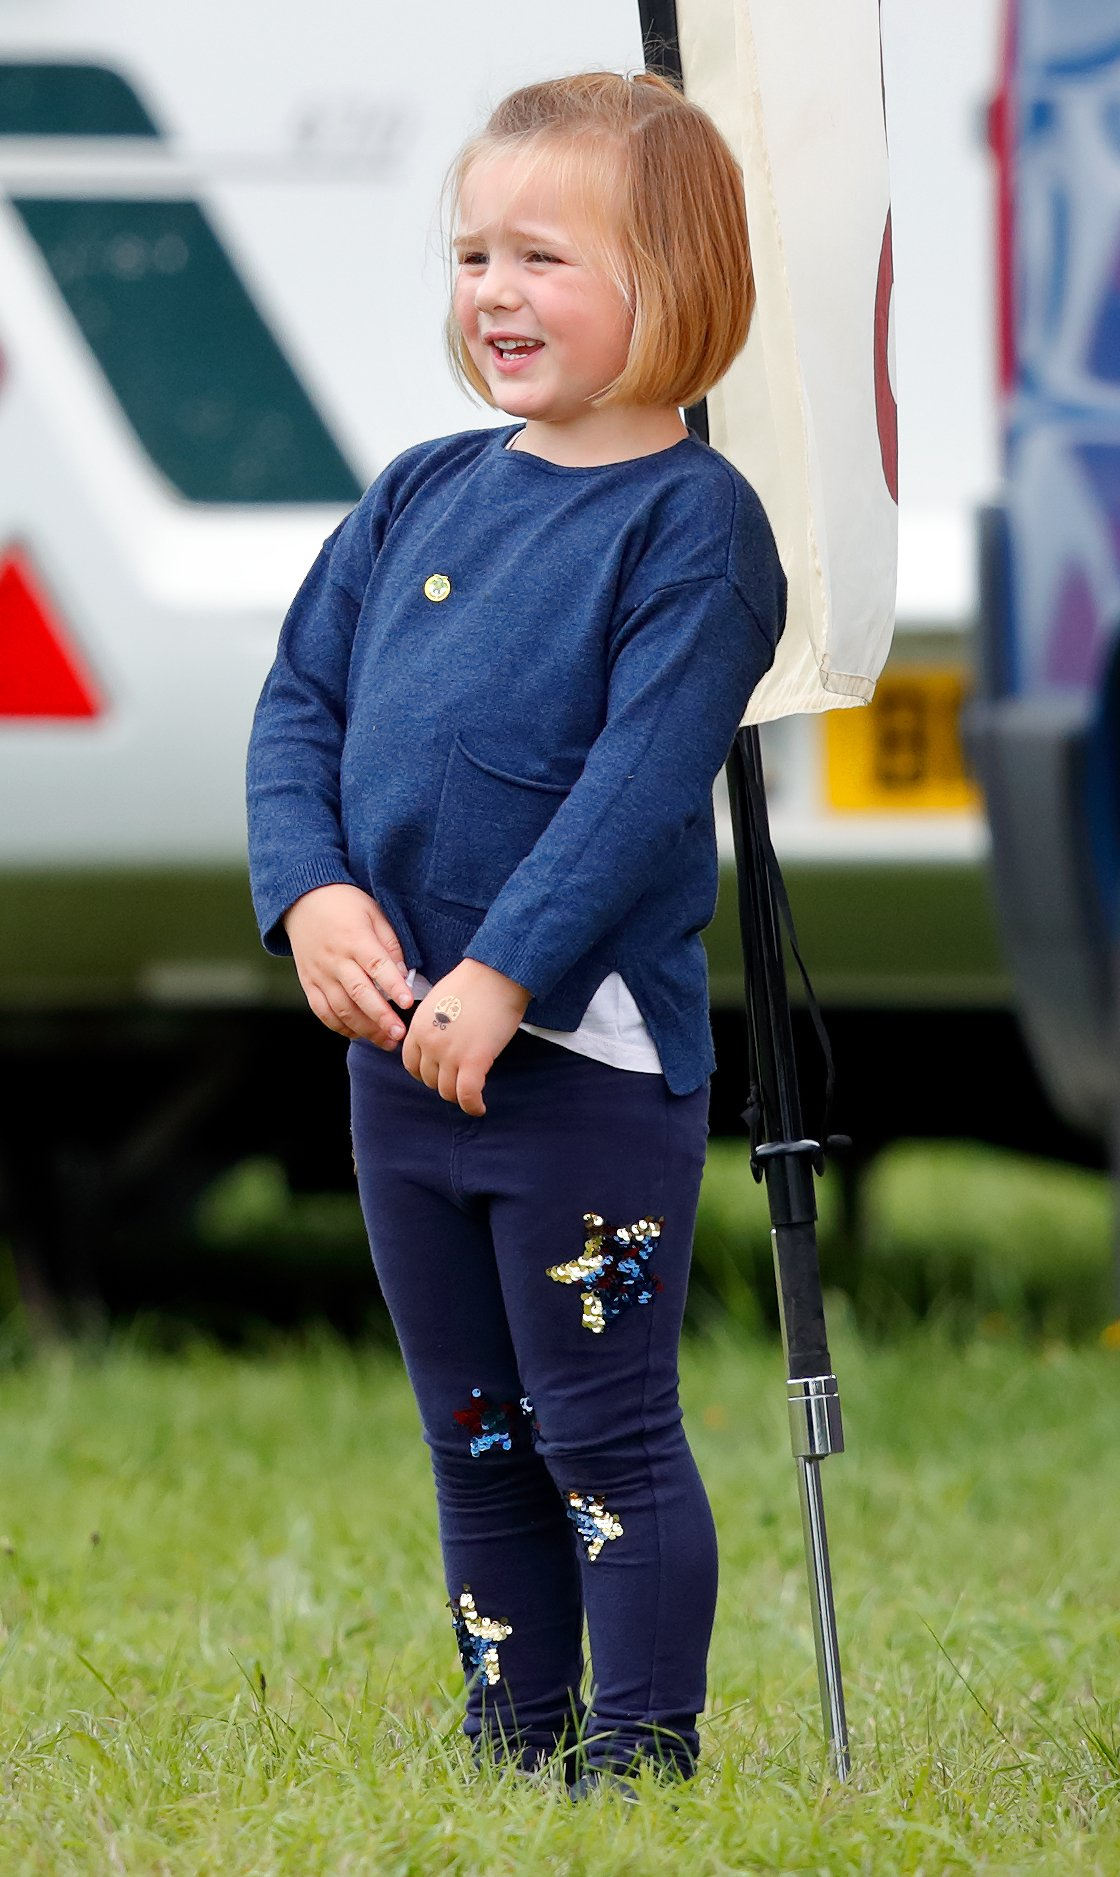 Mia Tindall Image: Getty Images.